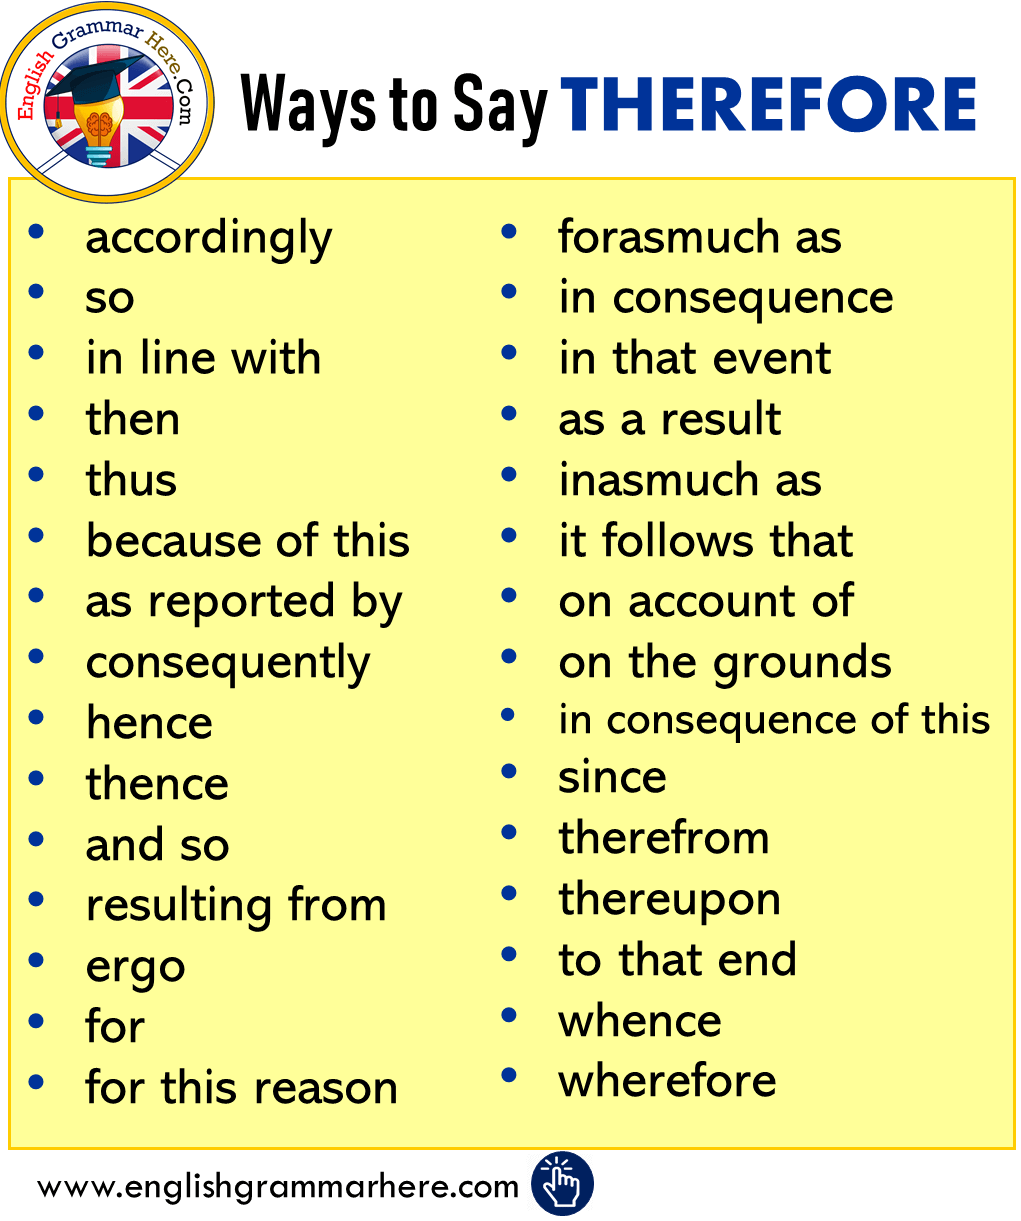 Ways to Say THEREFORE in English